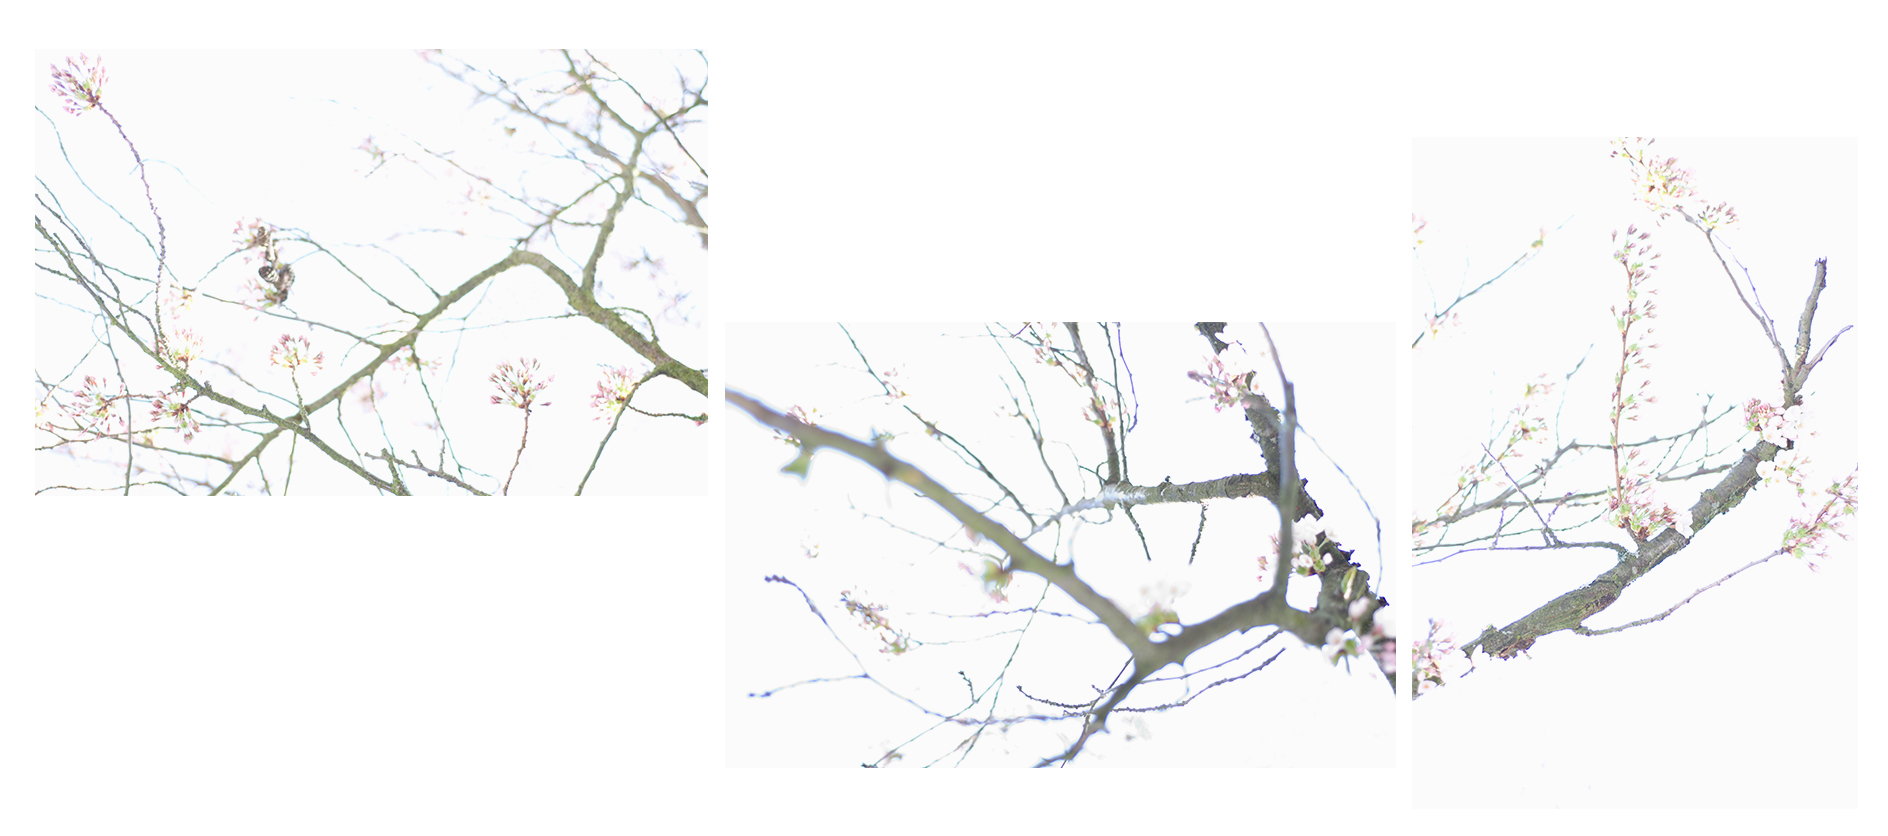 """describing a curve which brings it back to its point of departure   c-prints, aluminum, wood, plexiglass, 22"""" x 77"""""""